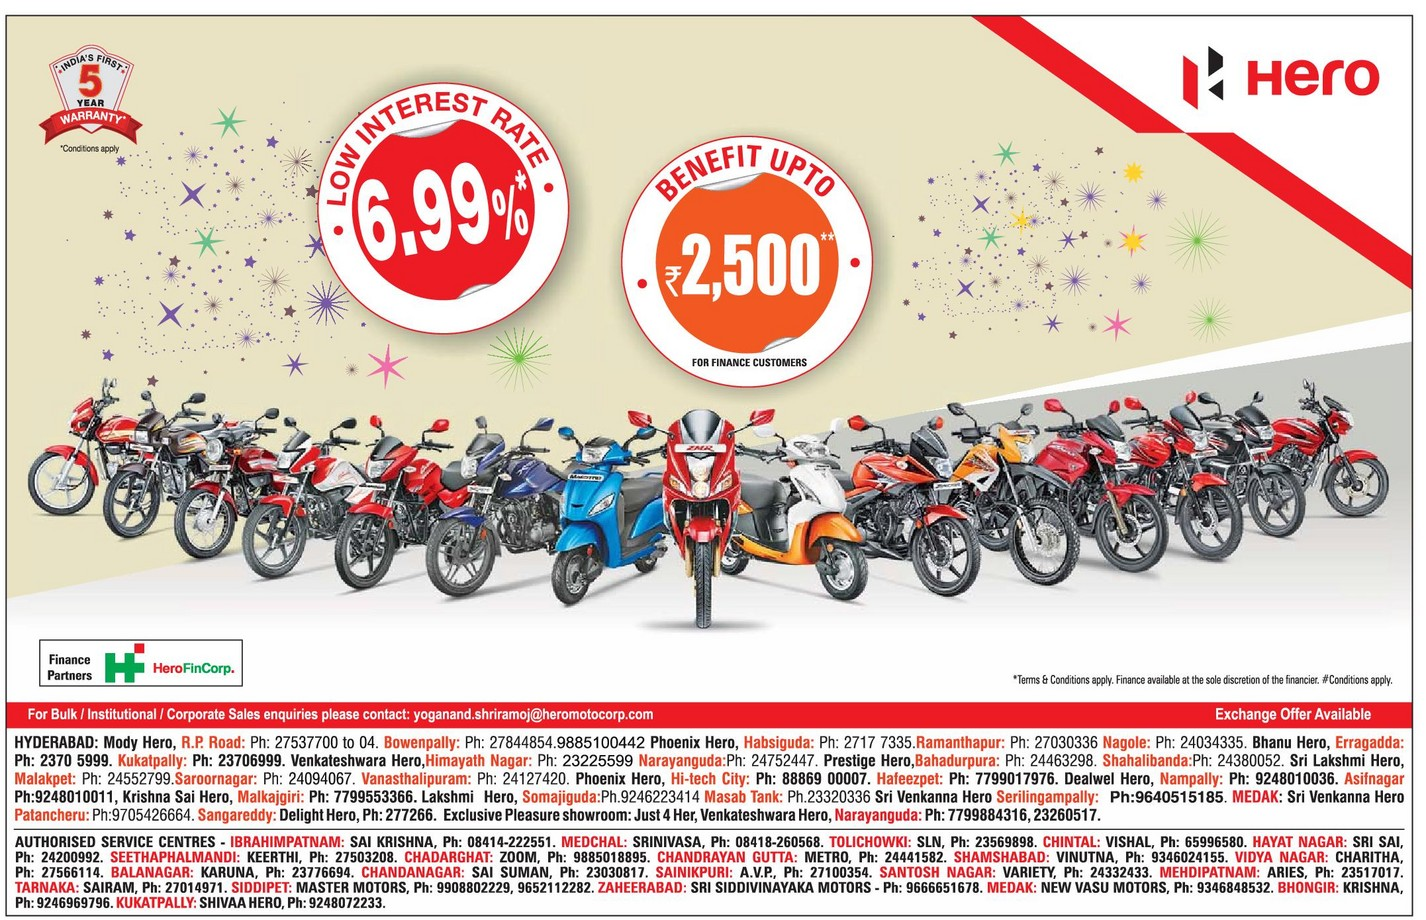 Lowest interest rate on Hero bike/scooters with amazing benefits | April 2016 discount offers | festive offers